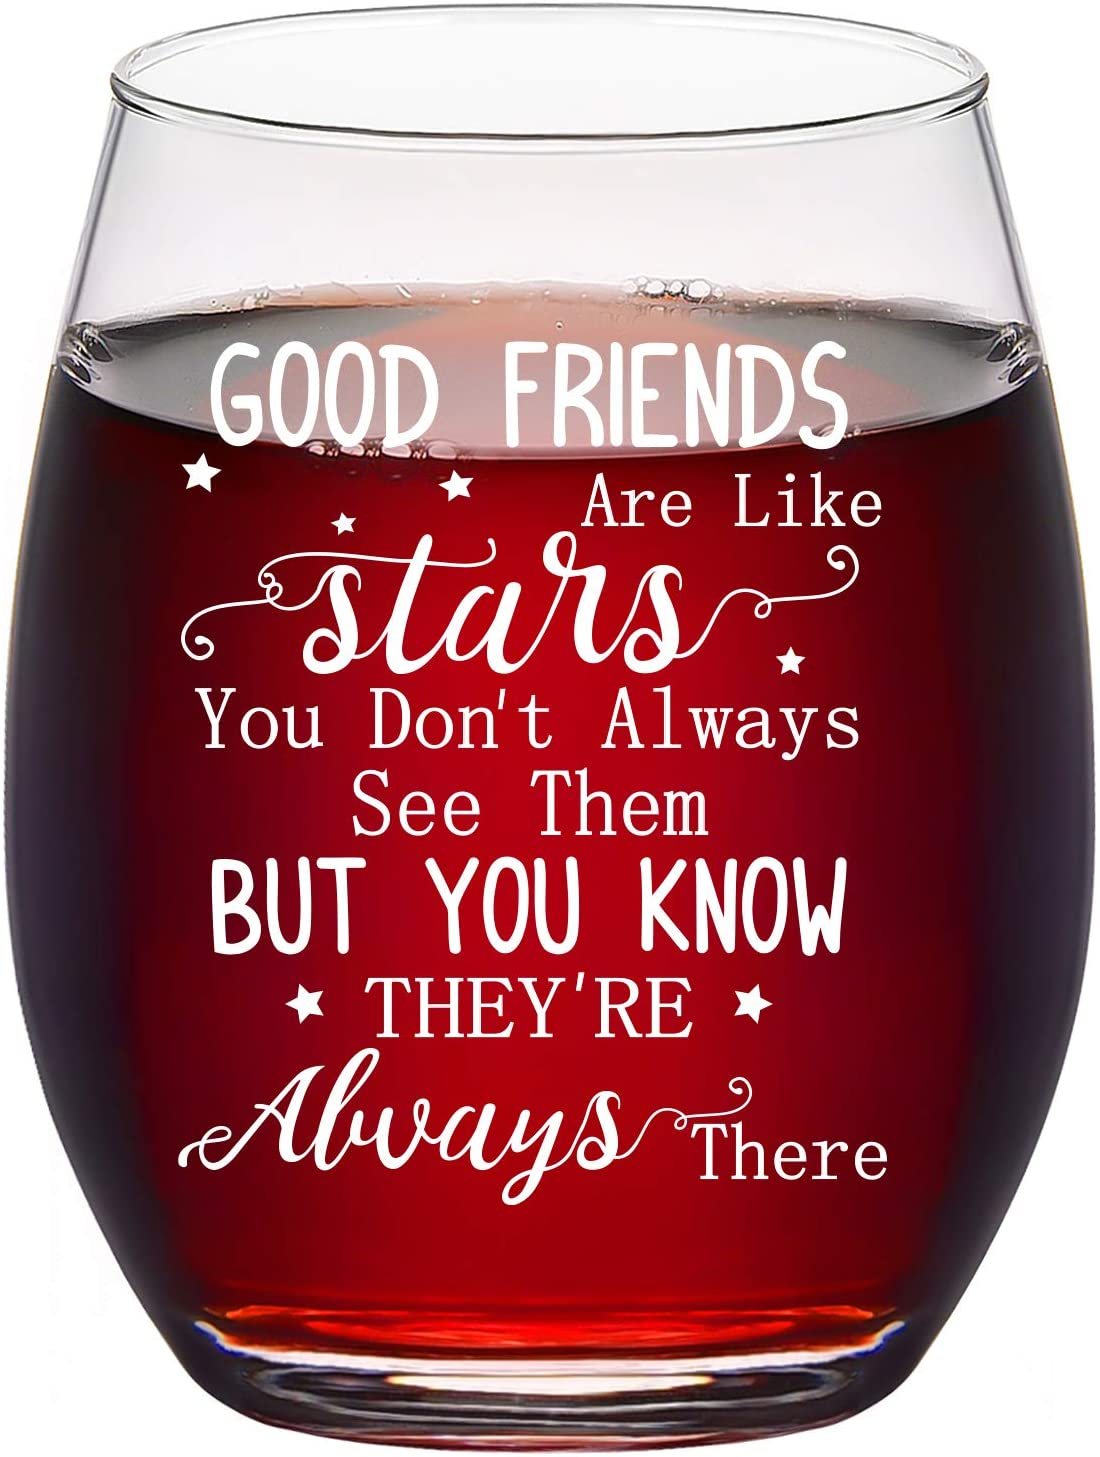 Good Friends Are Like Stars Wine Glass, Friendship Stemless Wine Glass 15Oz for Women, Her, Girls, Best Friends, Sisters, Soul Sister - Great Ideas for Birthday, Christmas, Galentines Day